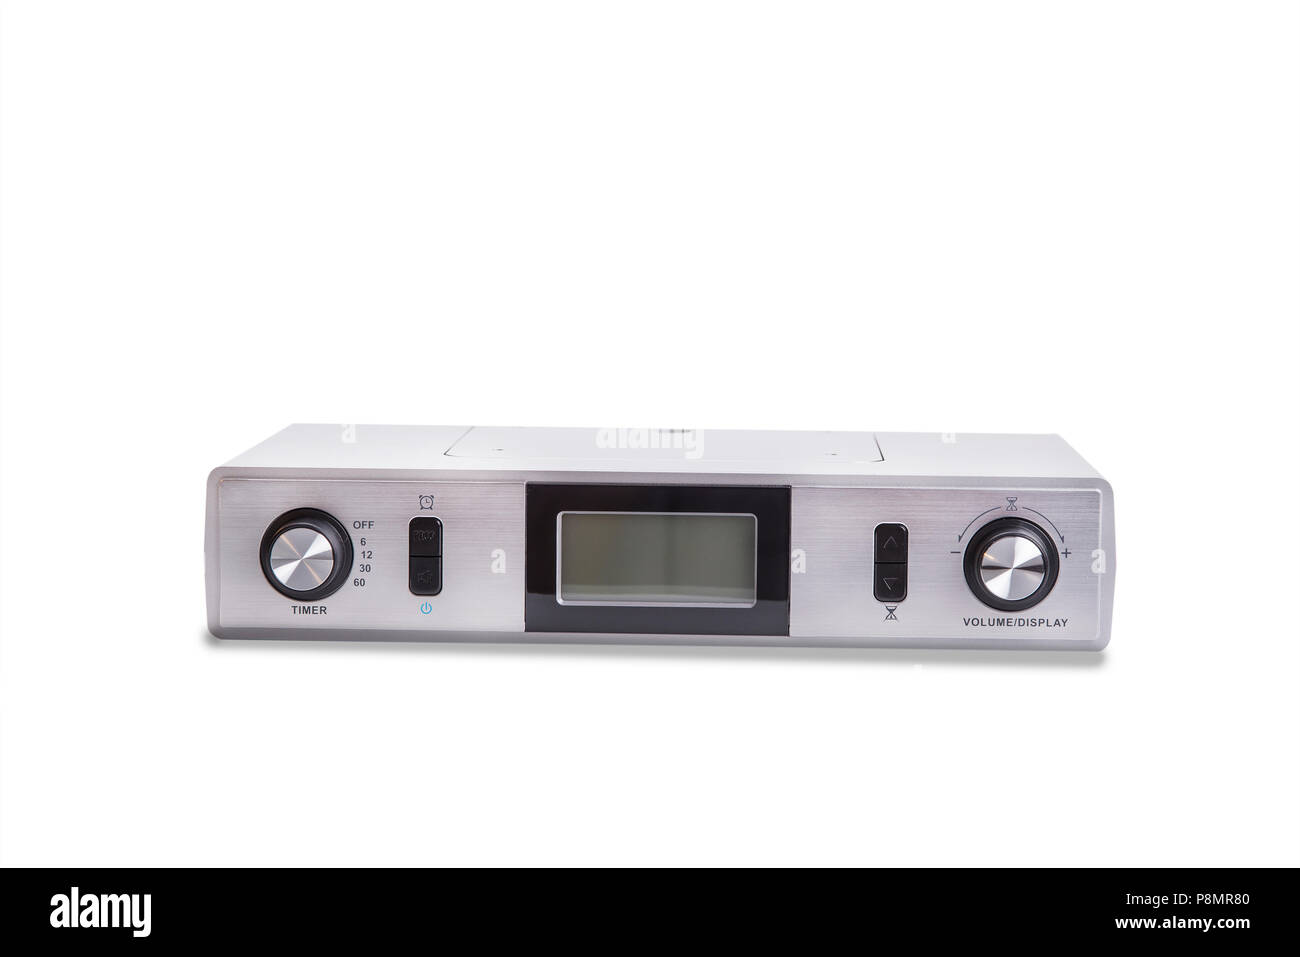 Kitchen radio to mount under cabinet on the white Stock Photo ... on antique pooley radio cabinet, kitchen cabinet radio cd player, radio cd under cabinet, microwave under cabinet,